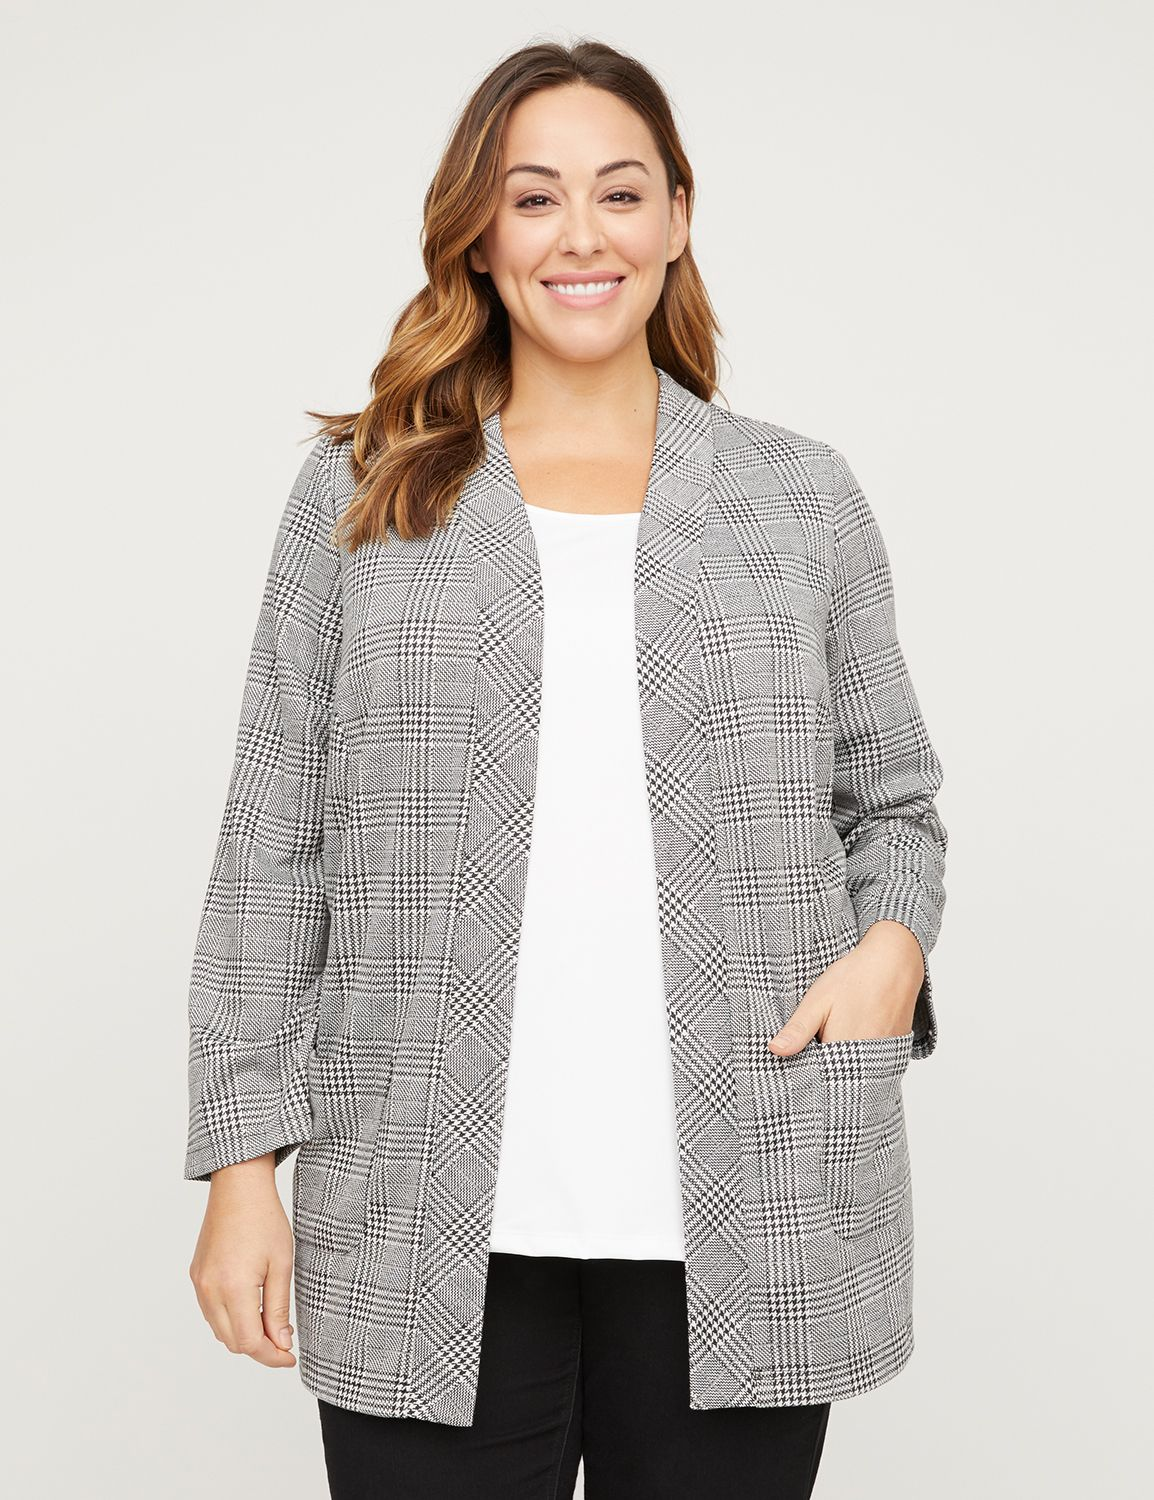 "Polish off any look in an open jacket in a mix of houndstooth plaids. Soft, draped ponte knit fabric. Two front patch pockets. Long sleeves. Item Number #315632, 100% Polyester, Machine Wash, Imported Plus Size Top Plus Size Jacket, Length: 33"" , Plus Sizes 0X-5X, Catherines Plus Sizes"